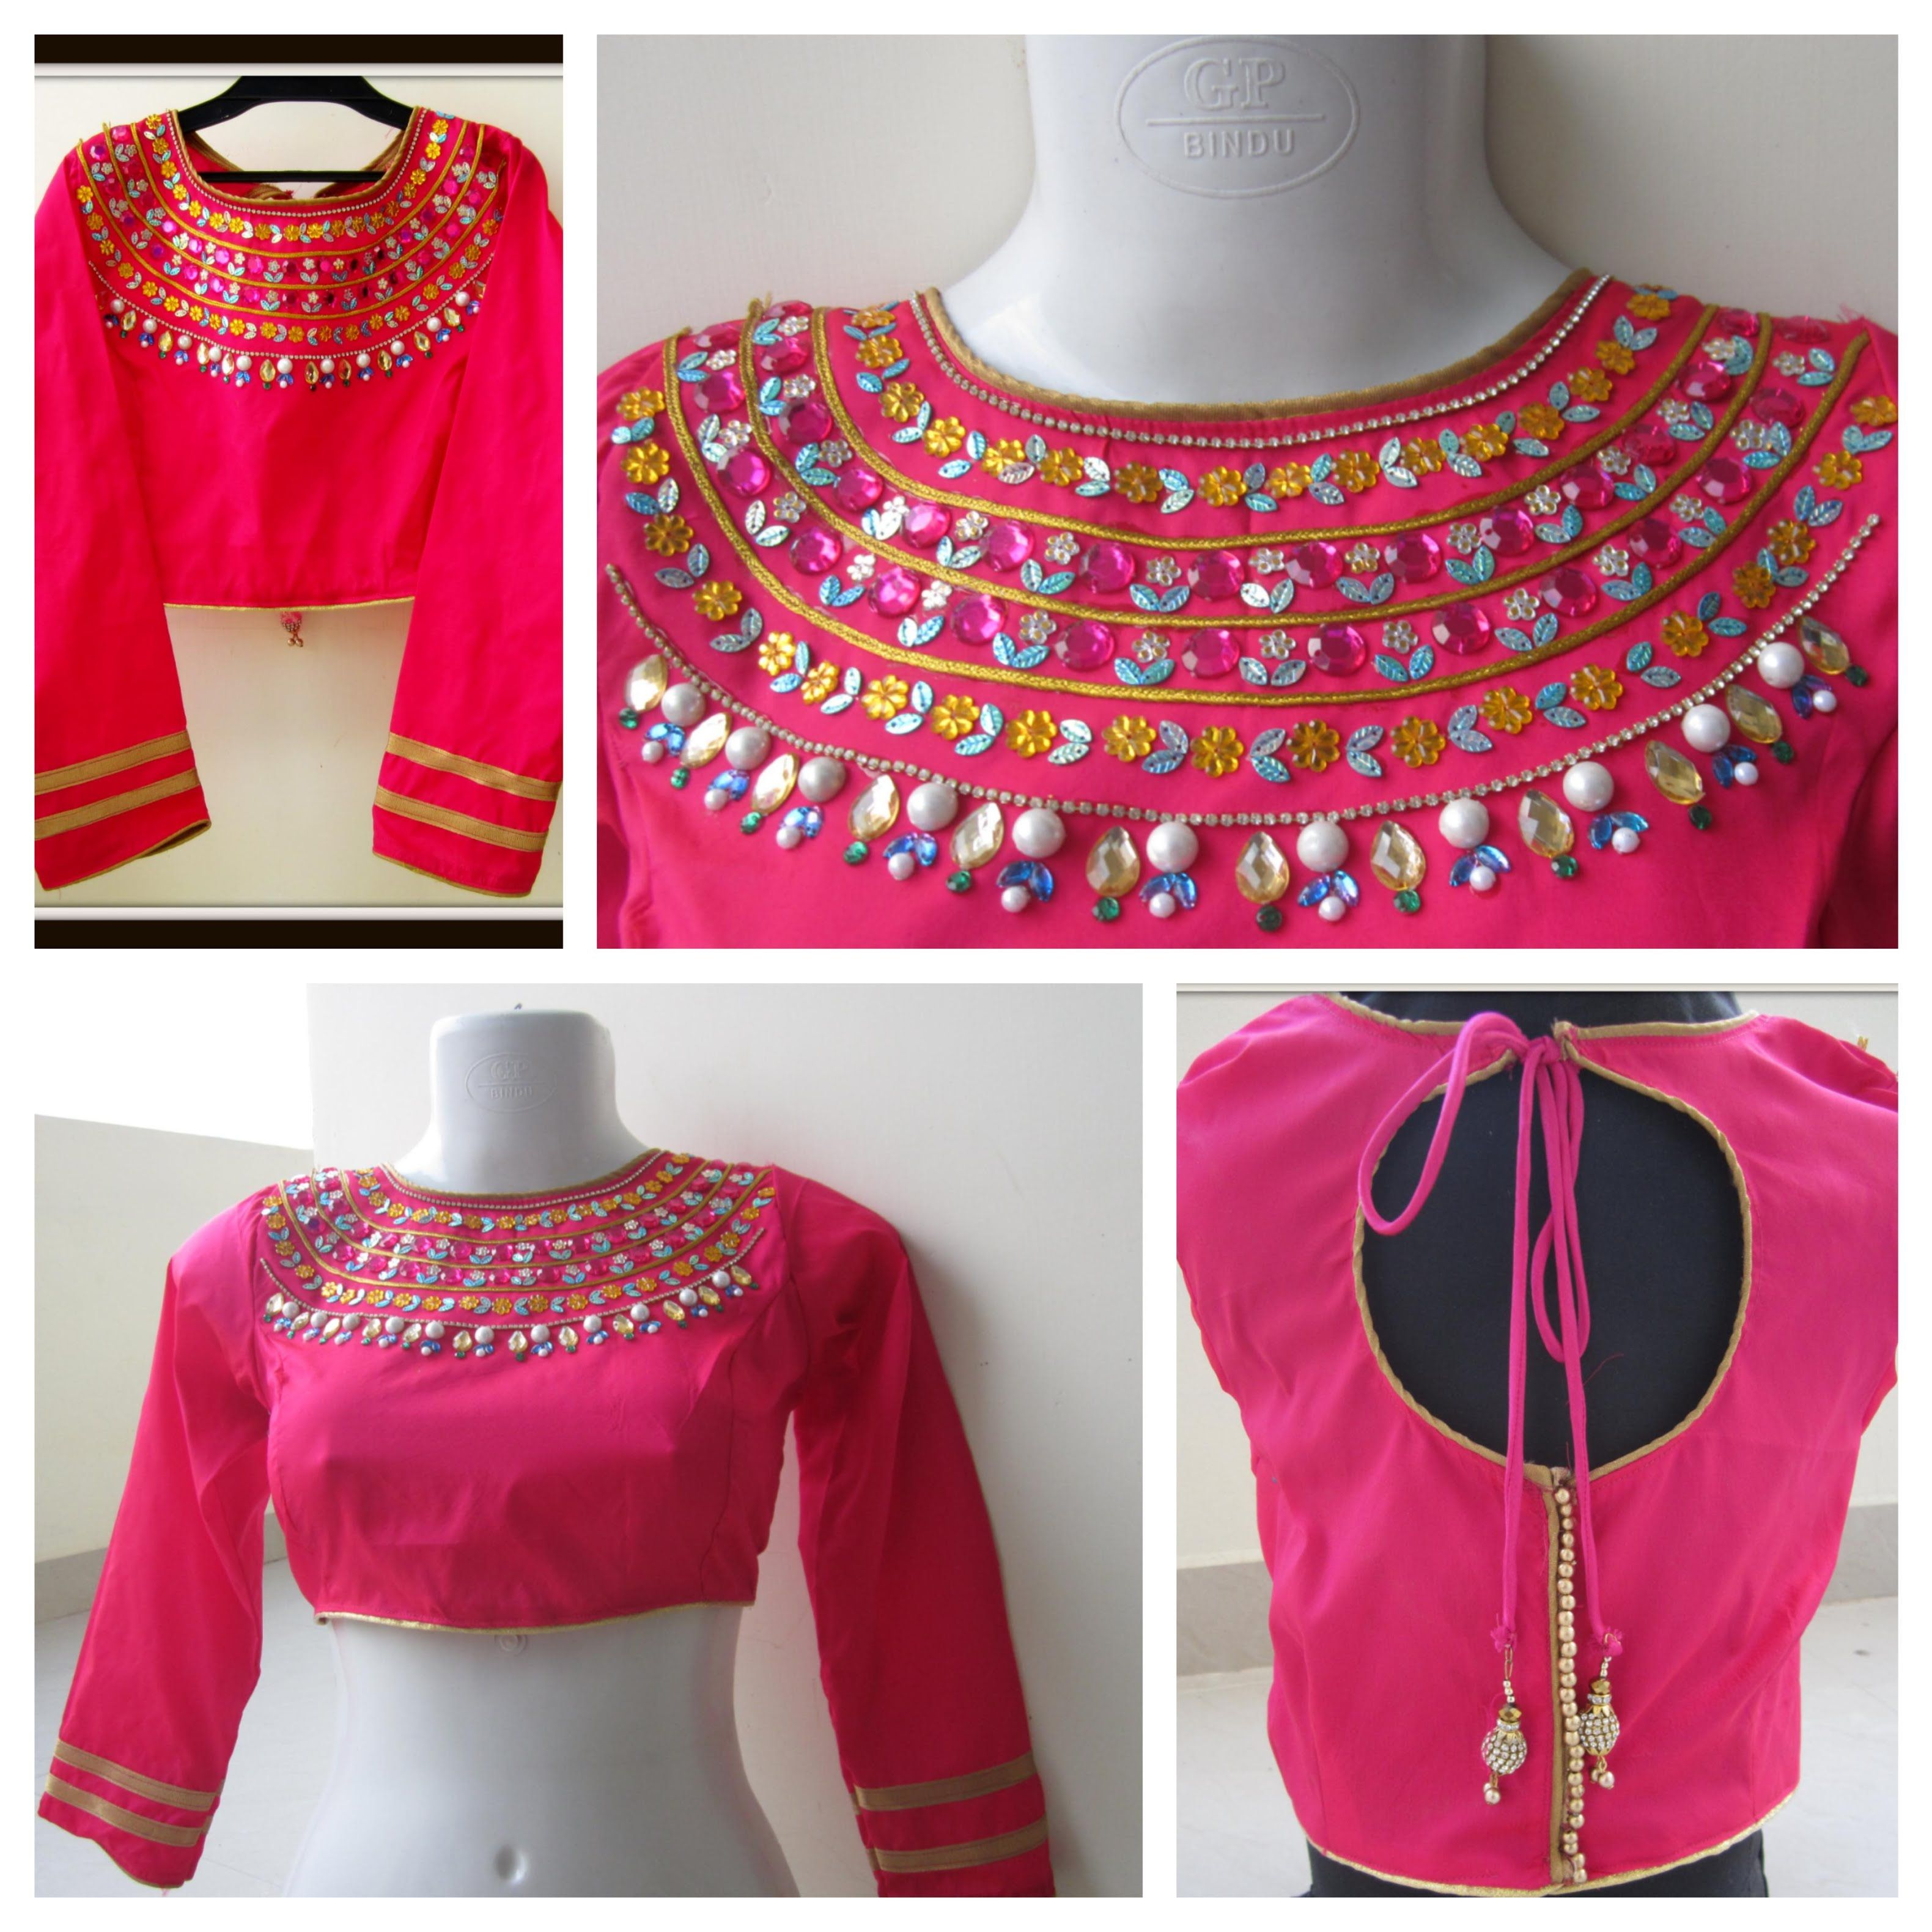 Saree blouse design cutting and stitching maharani blouse  high neck  easy cutting sewing and designing